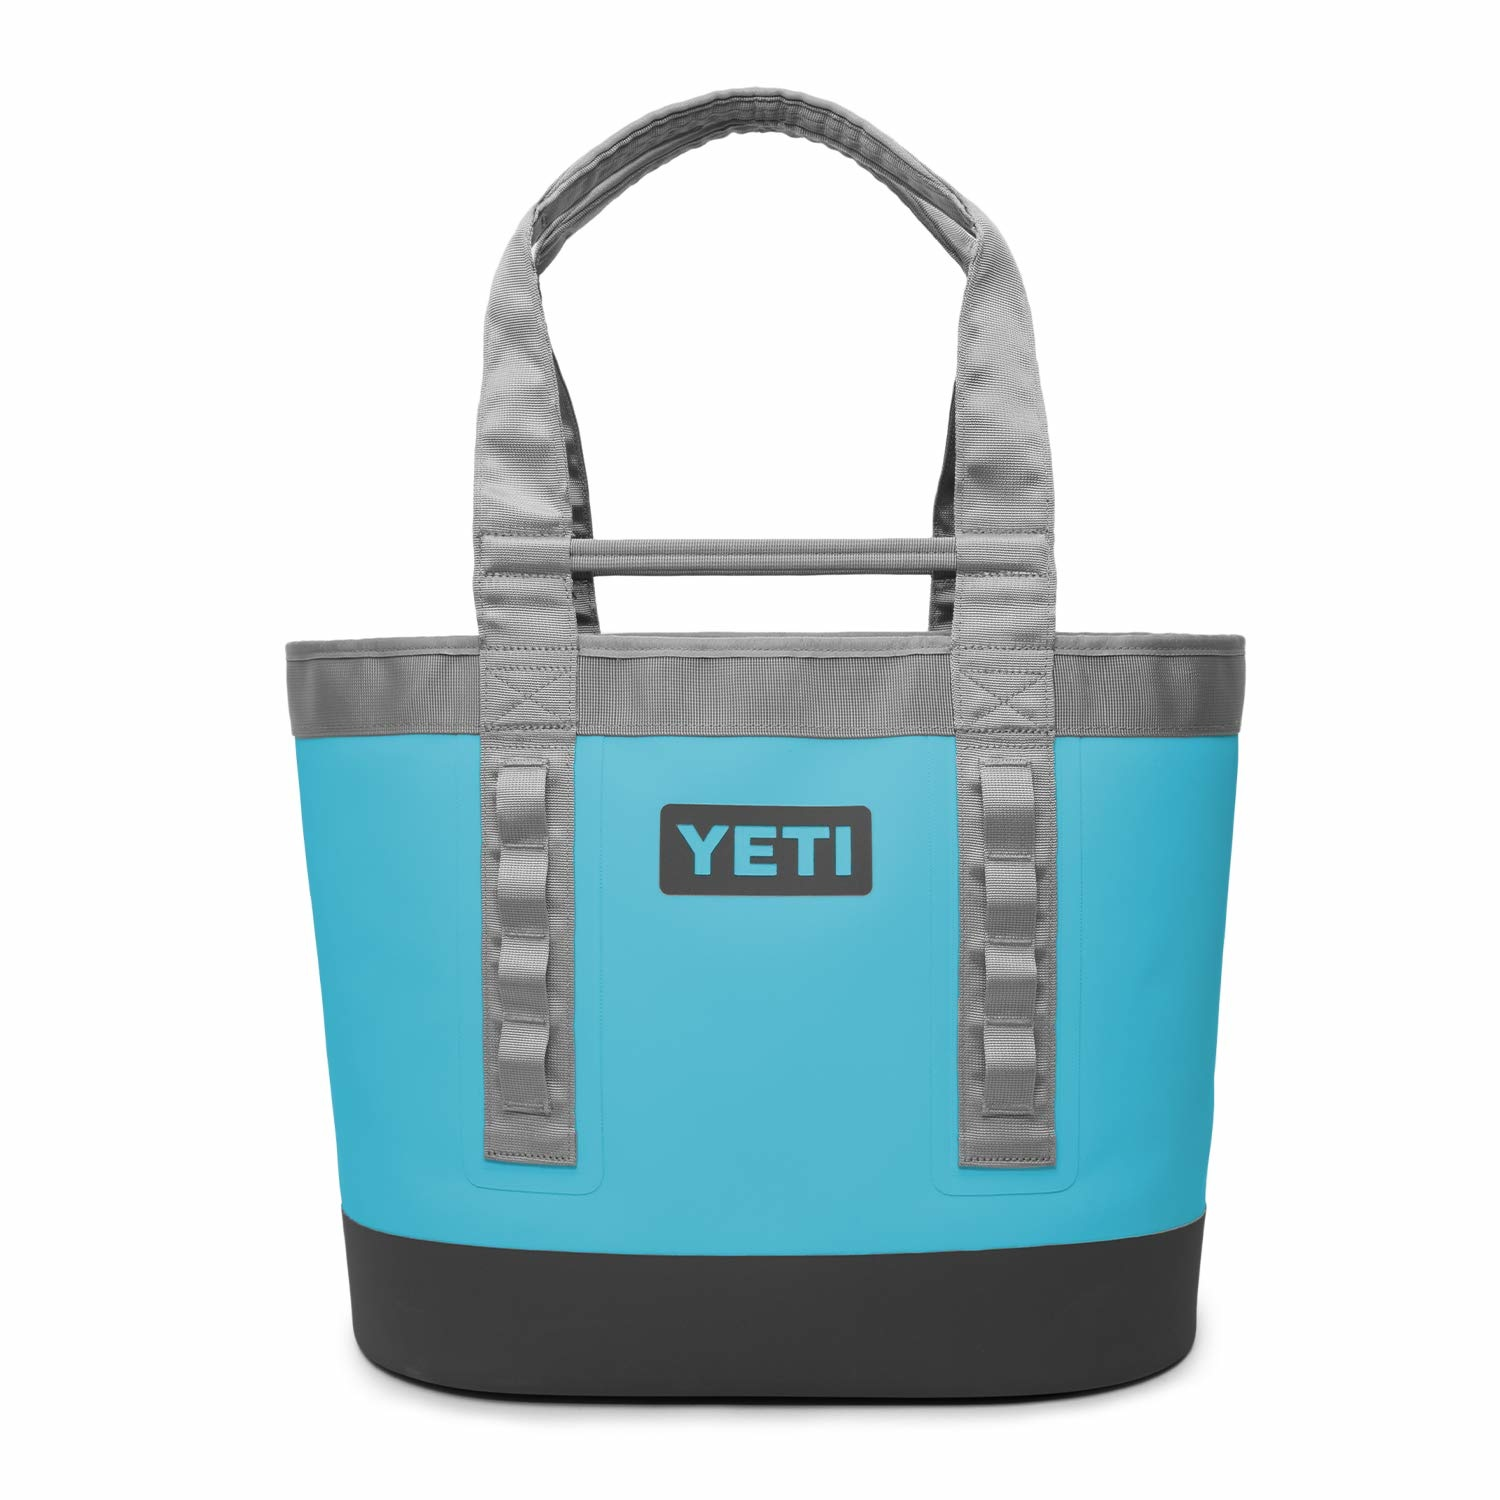 Yeti Yeti Camino Carryall 35,  All-Purpose Utility, Boat and Beach Tote Bag, Durable, Waterproof